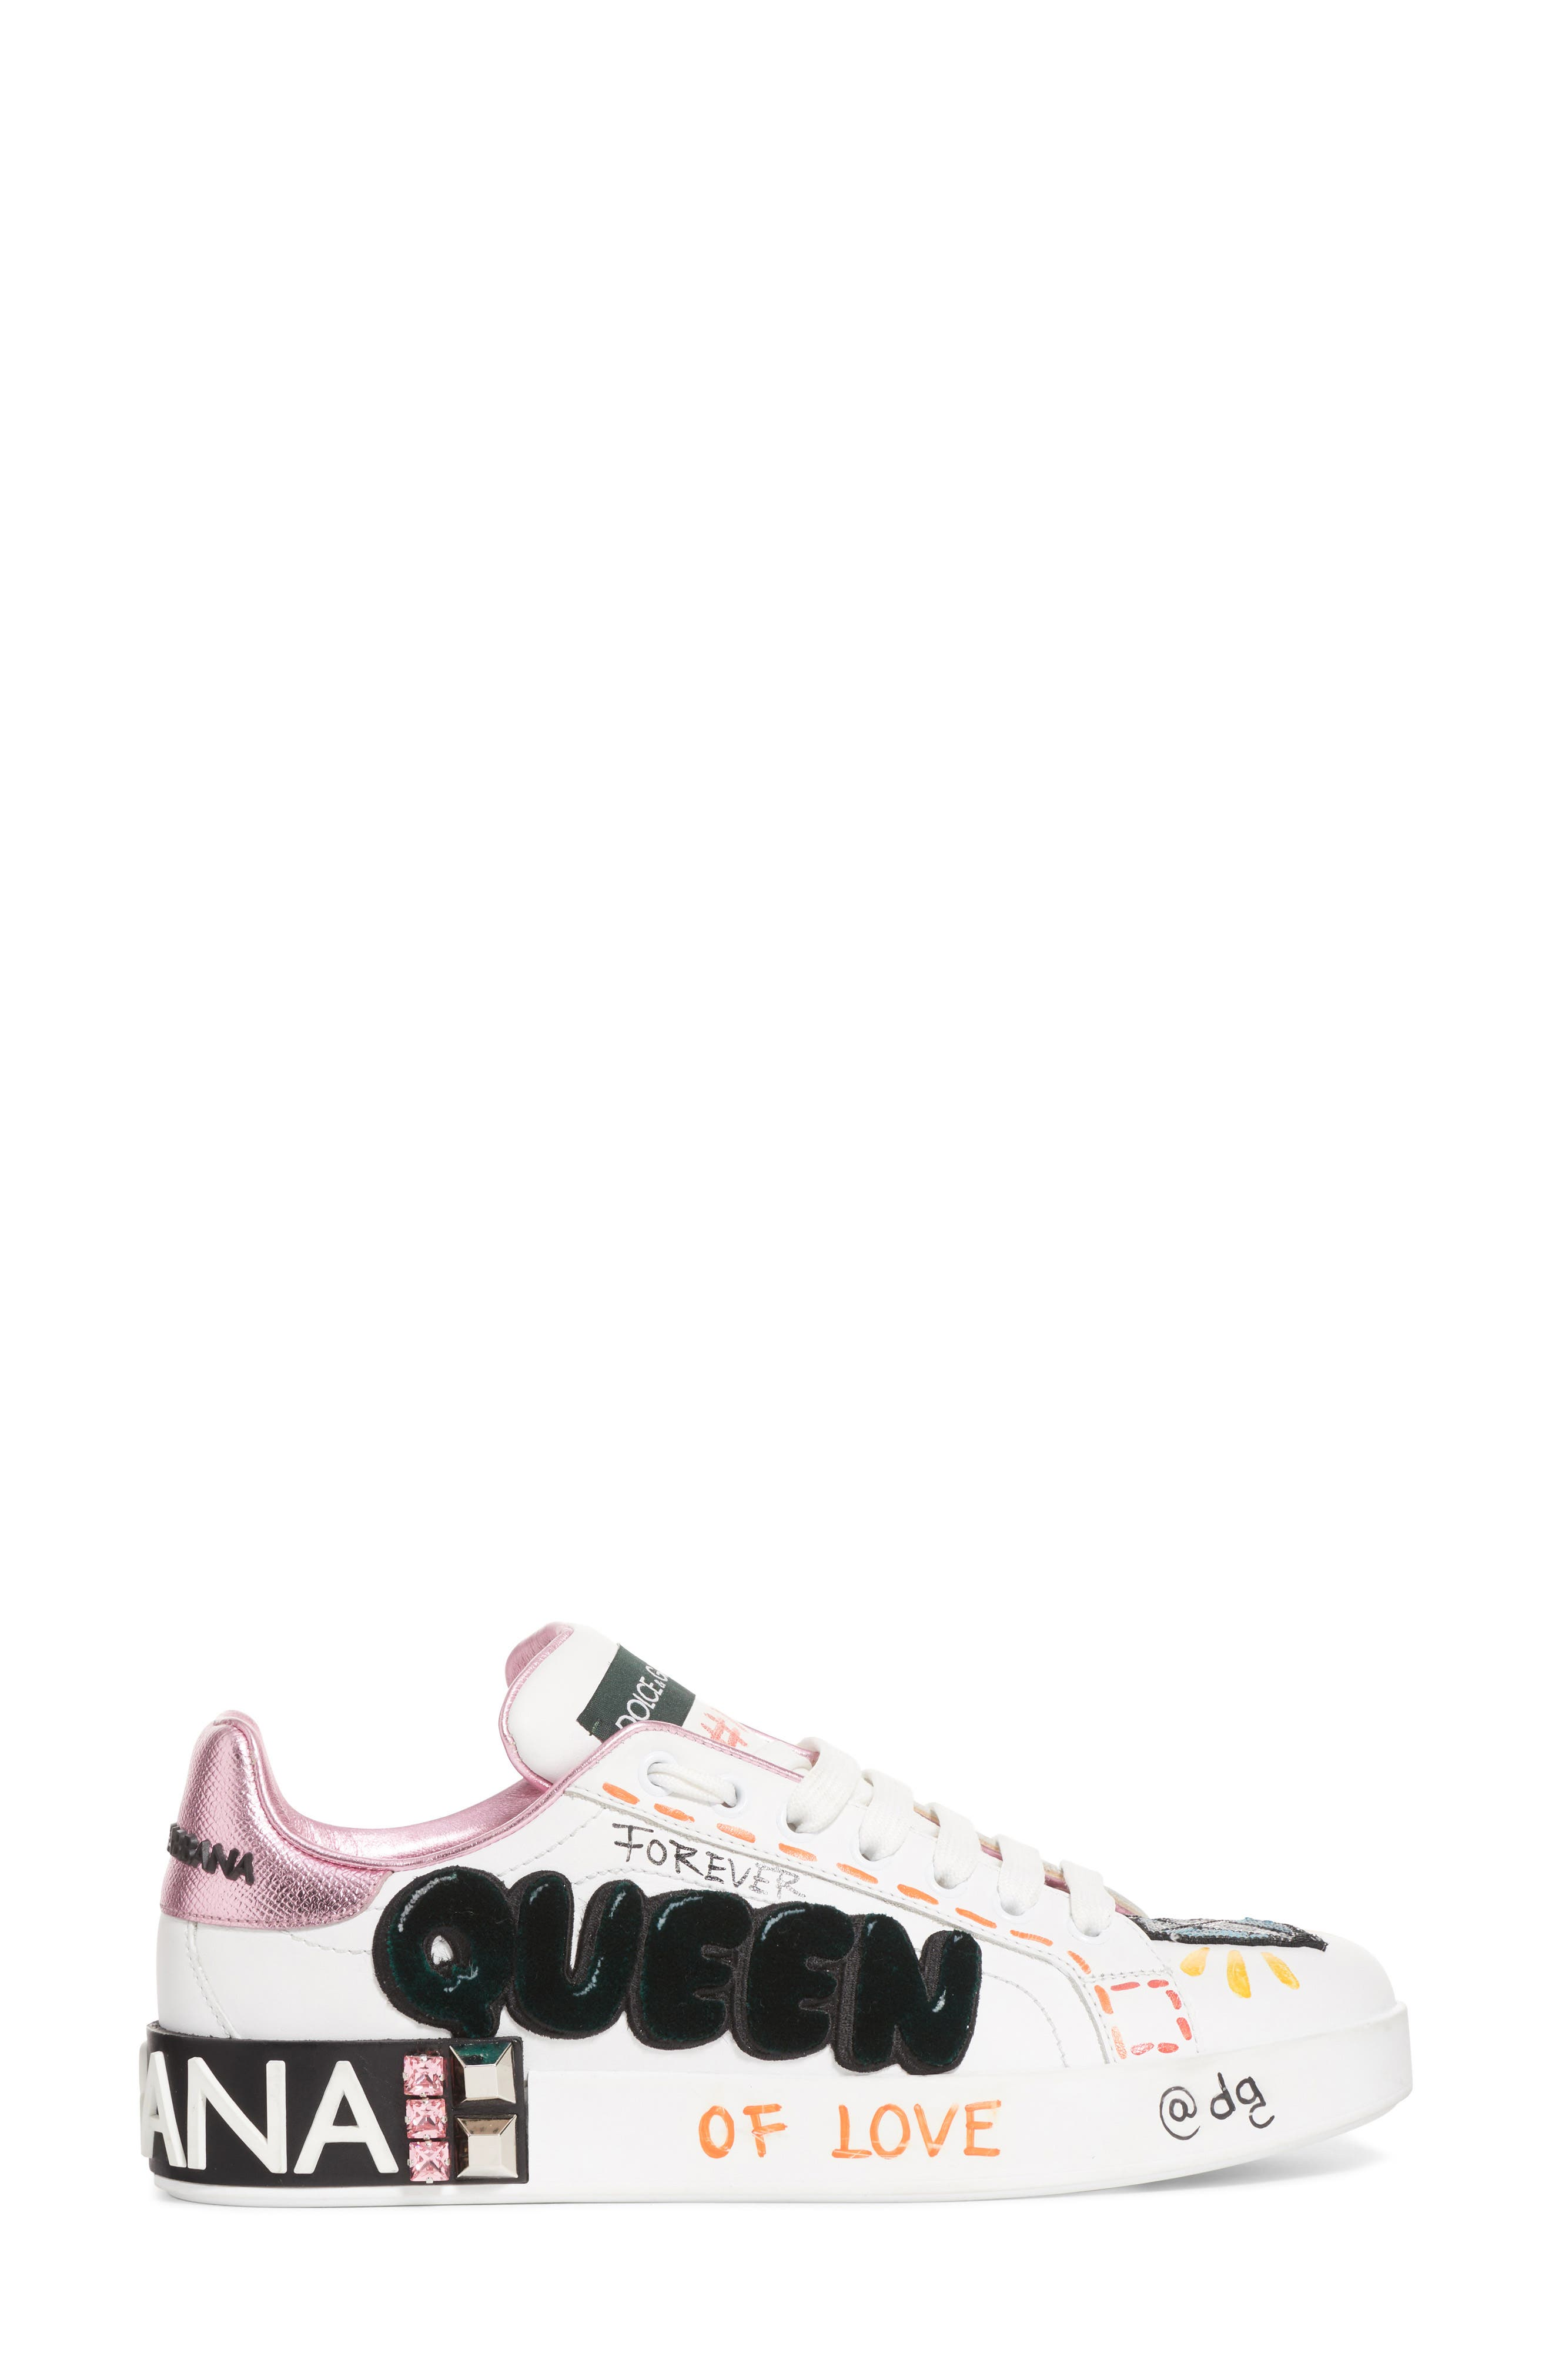 DOLCE&GABBANA, Queen Graffiti Lace-Up Sneaker, Alternate thumbnail 3, color, 110